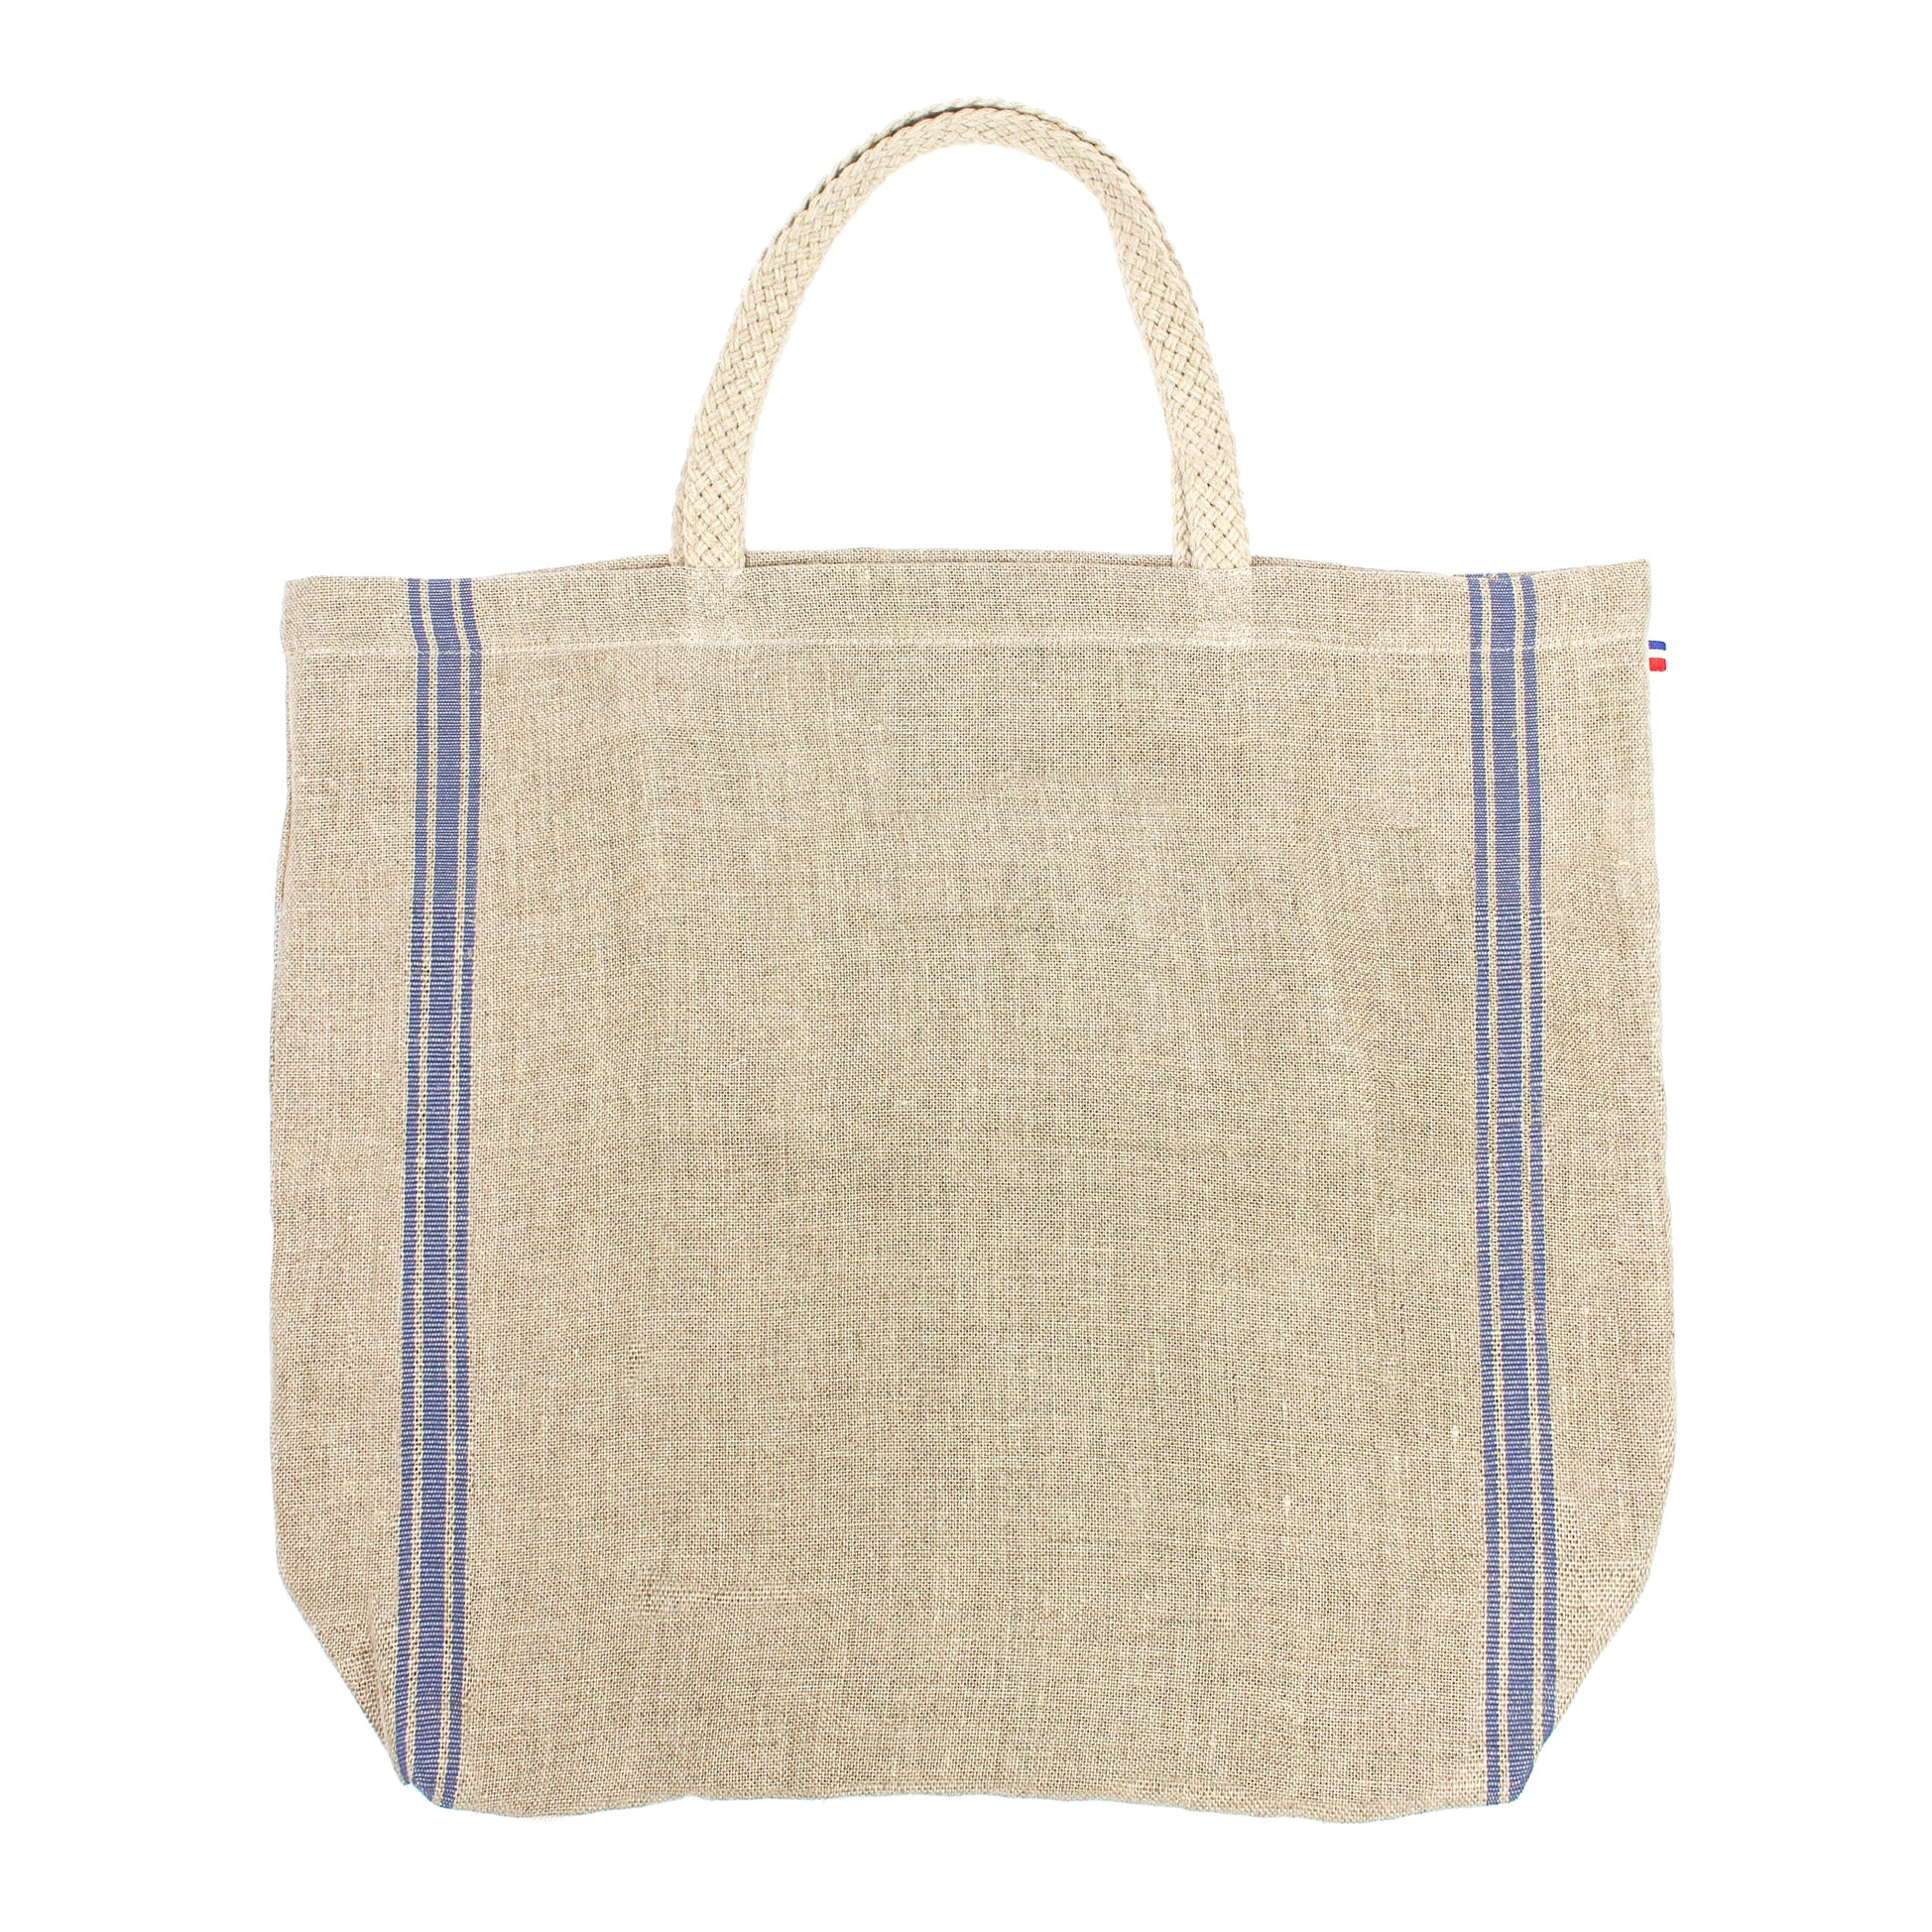 Monogramme Blue Thieffry Linen Beach Tote with Braided Handle and Inner Zipper Pocket